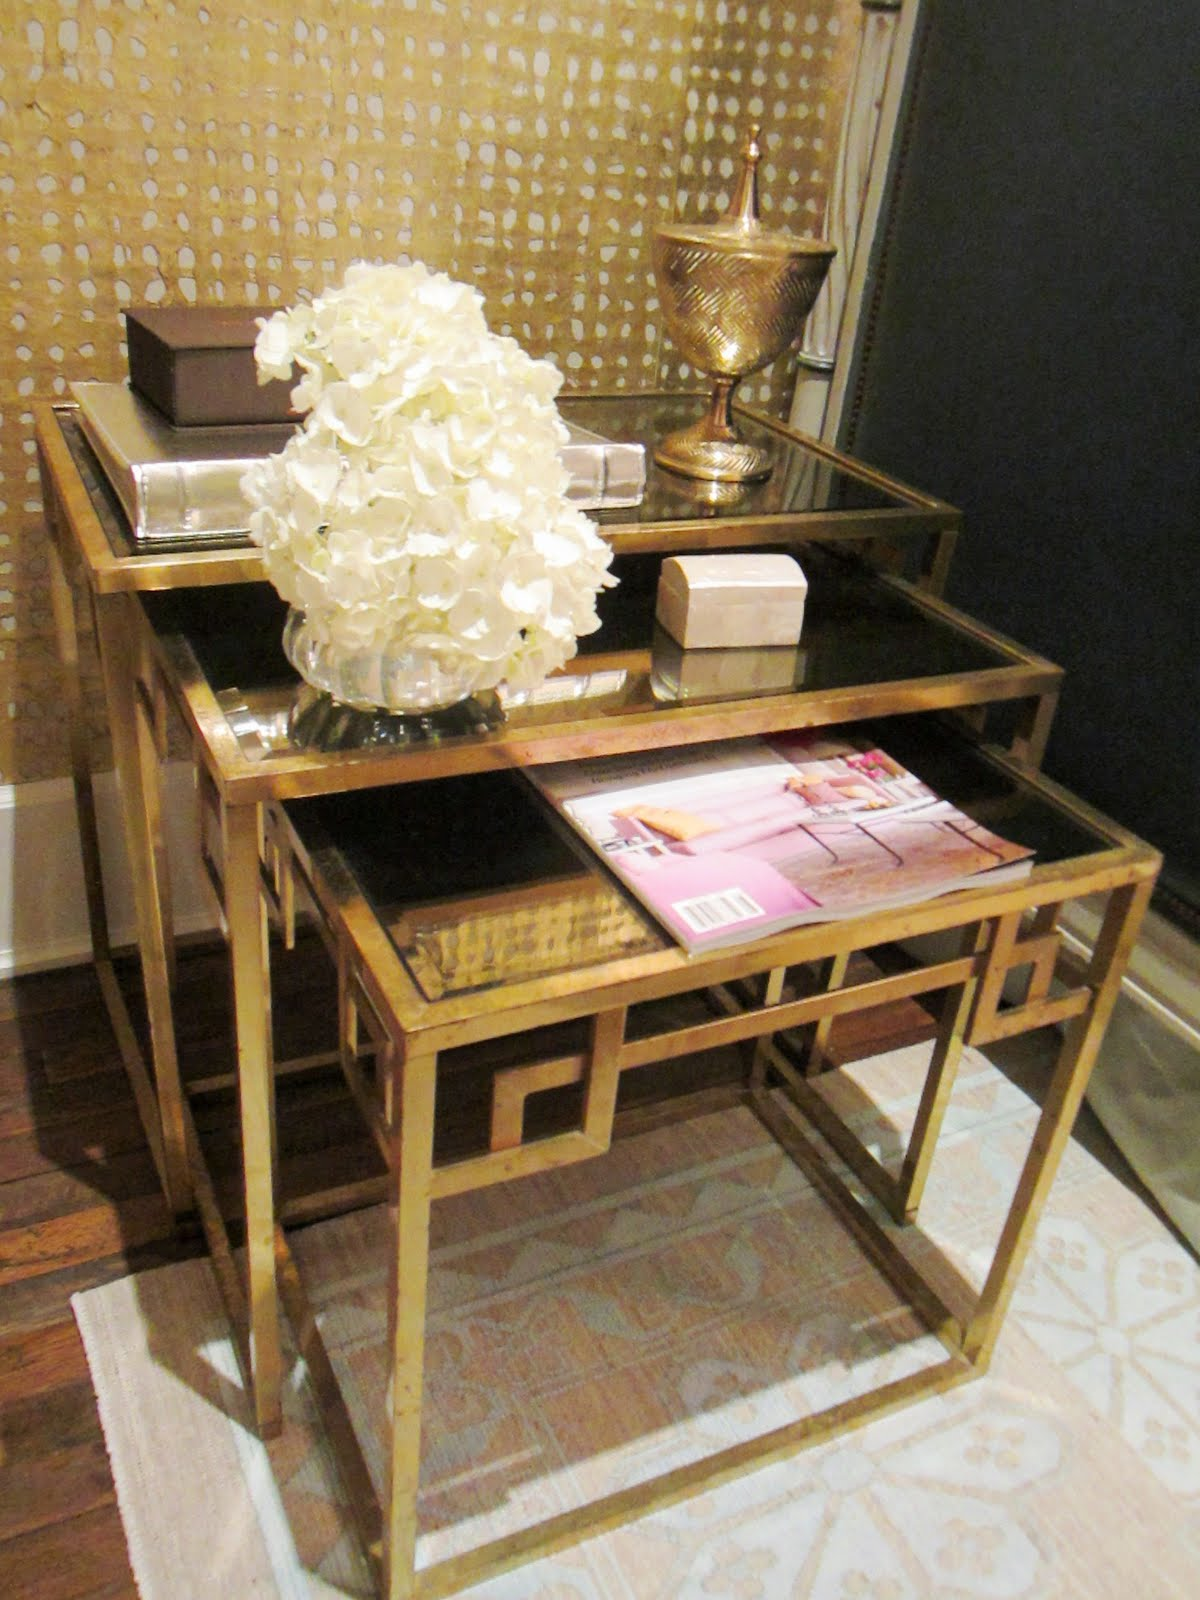 Three Gold Art Deco Inspired Nesting Tables With A Magazine, Flower  Arrangement, Wood